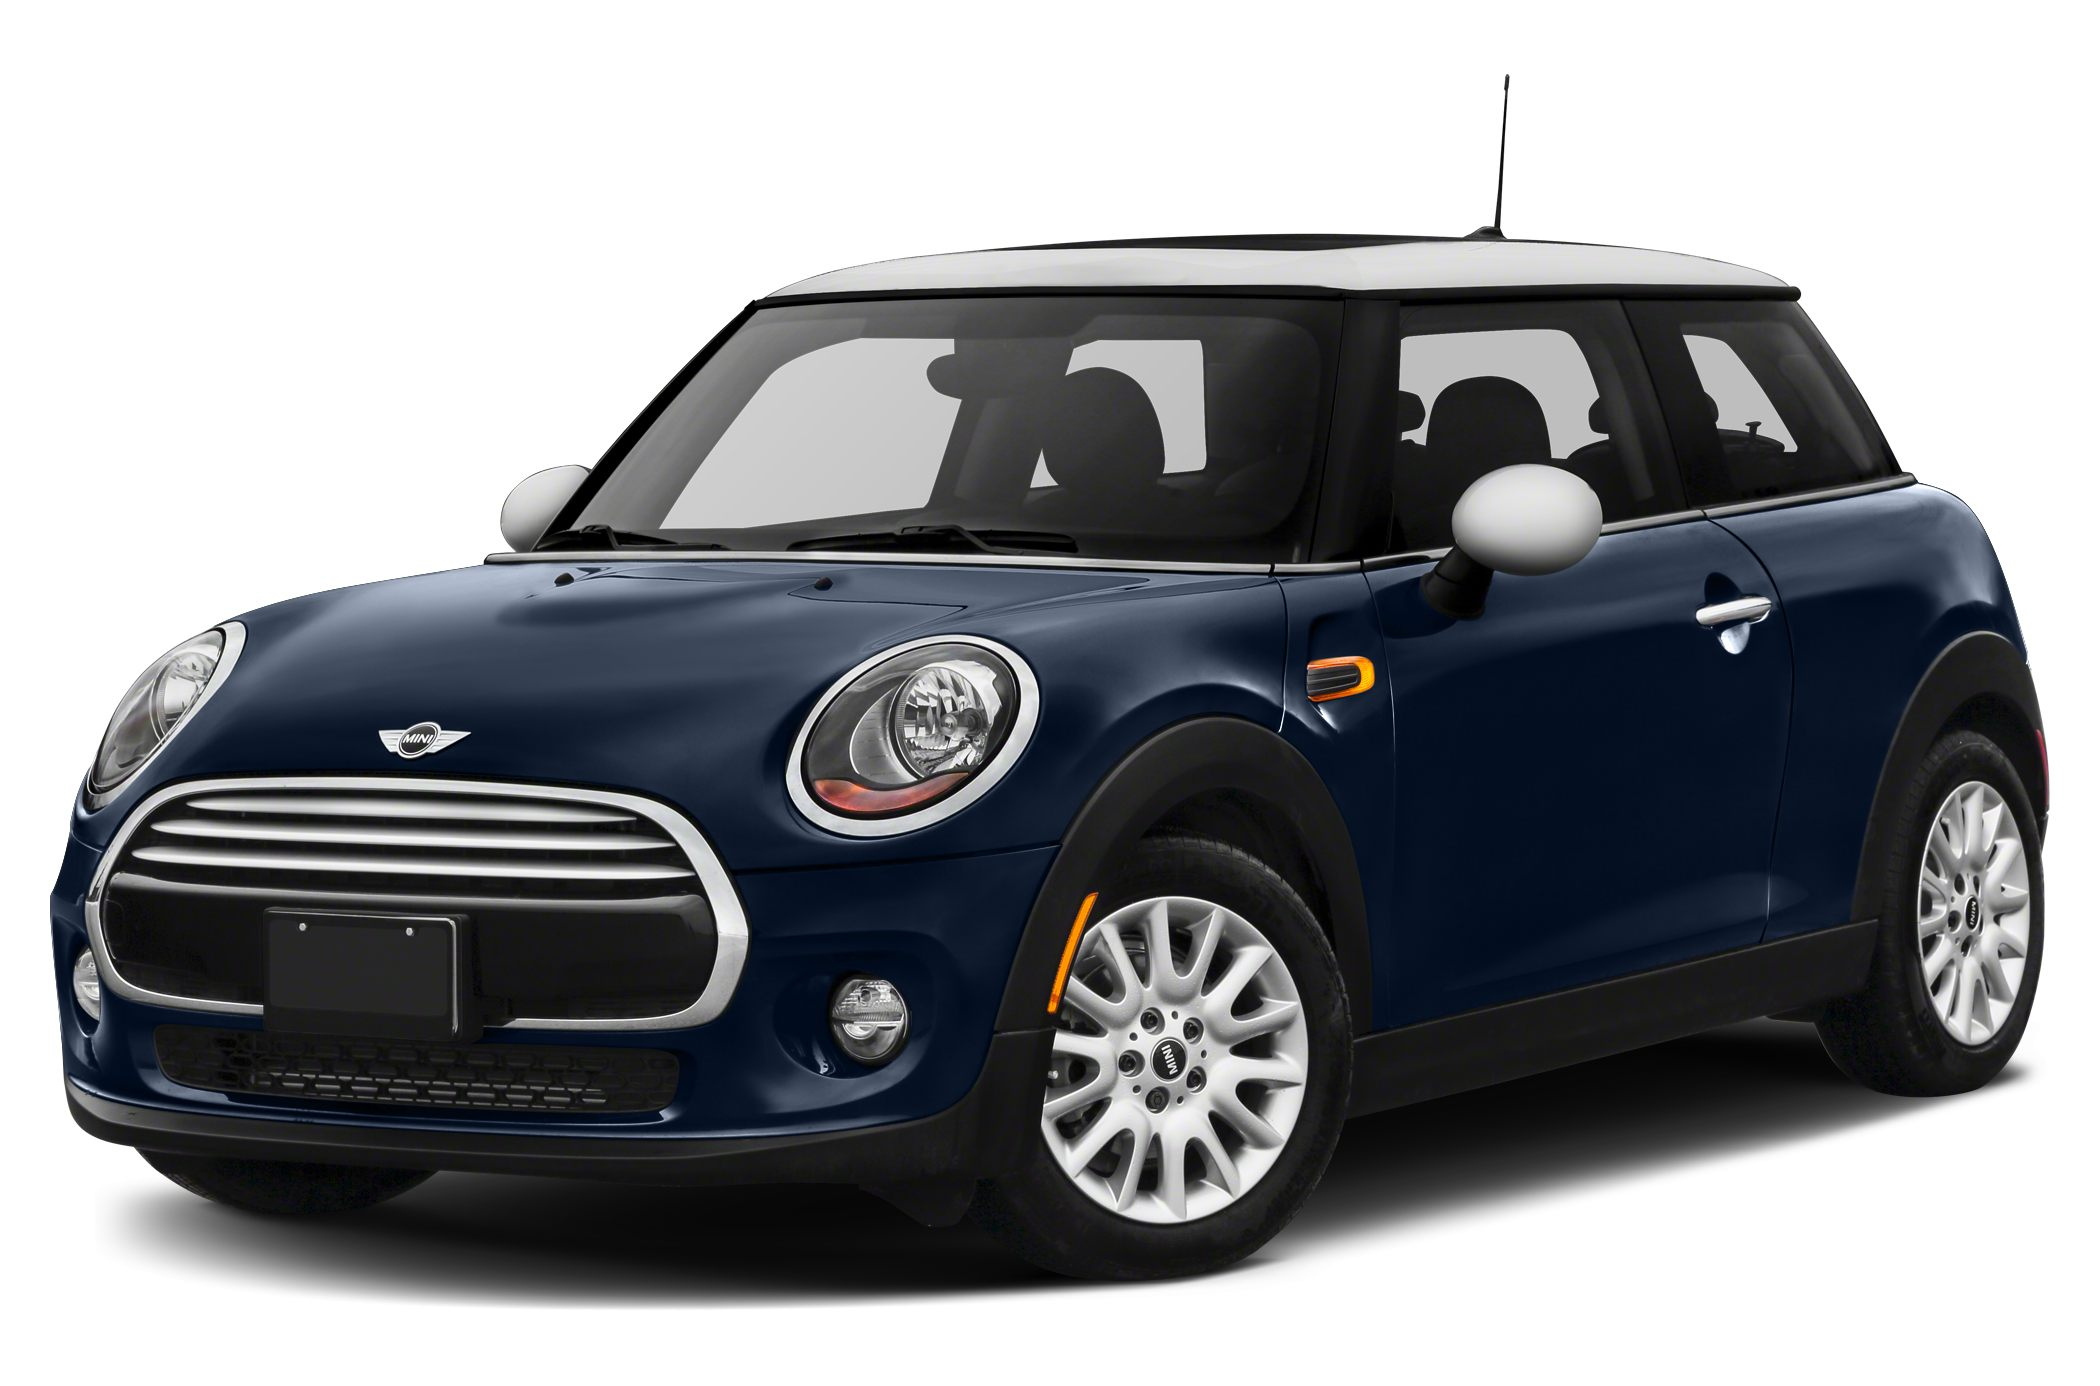 2016 Mini Hardtop Pricing And Specs